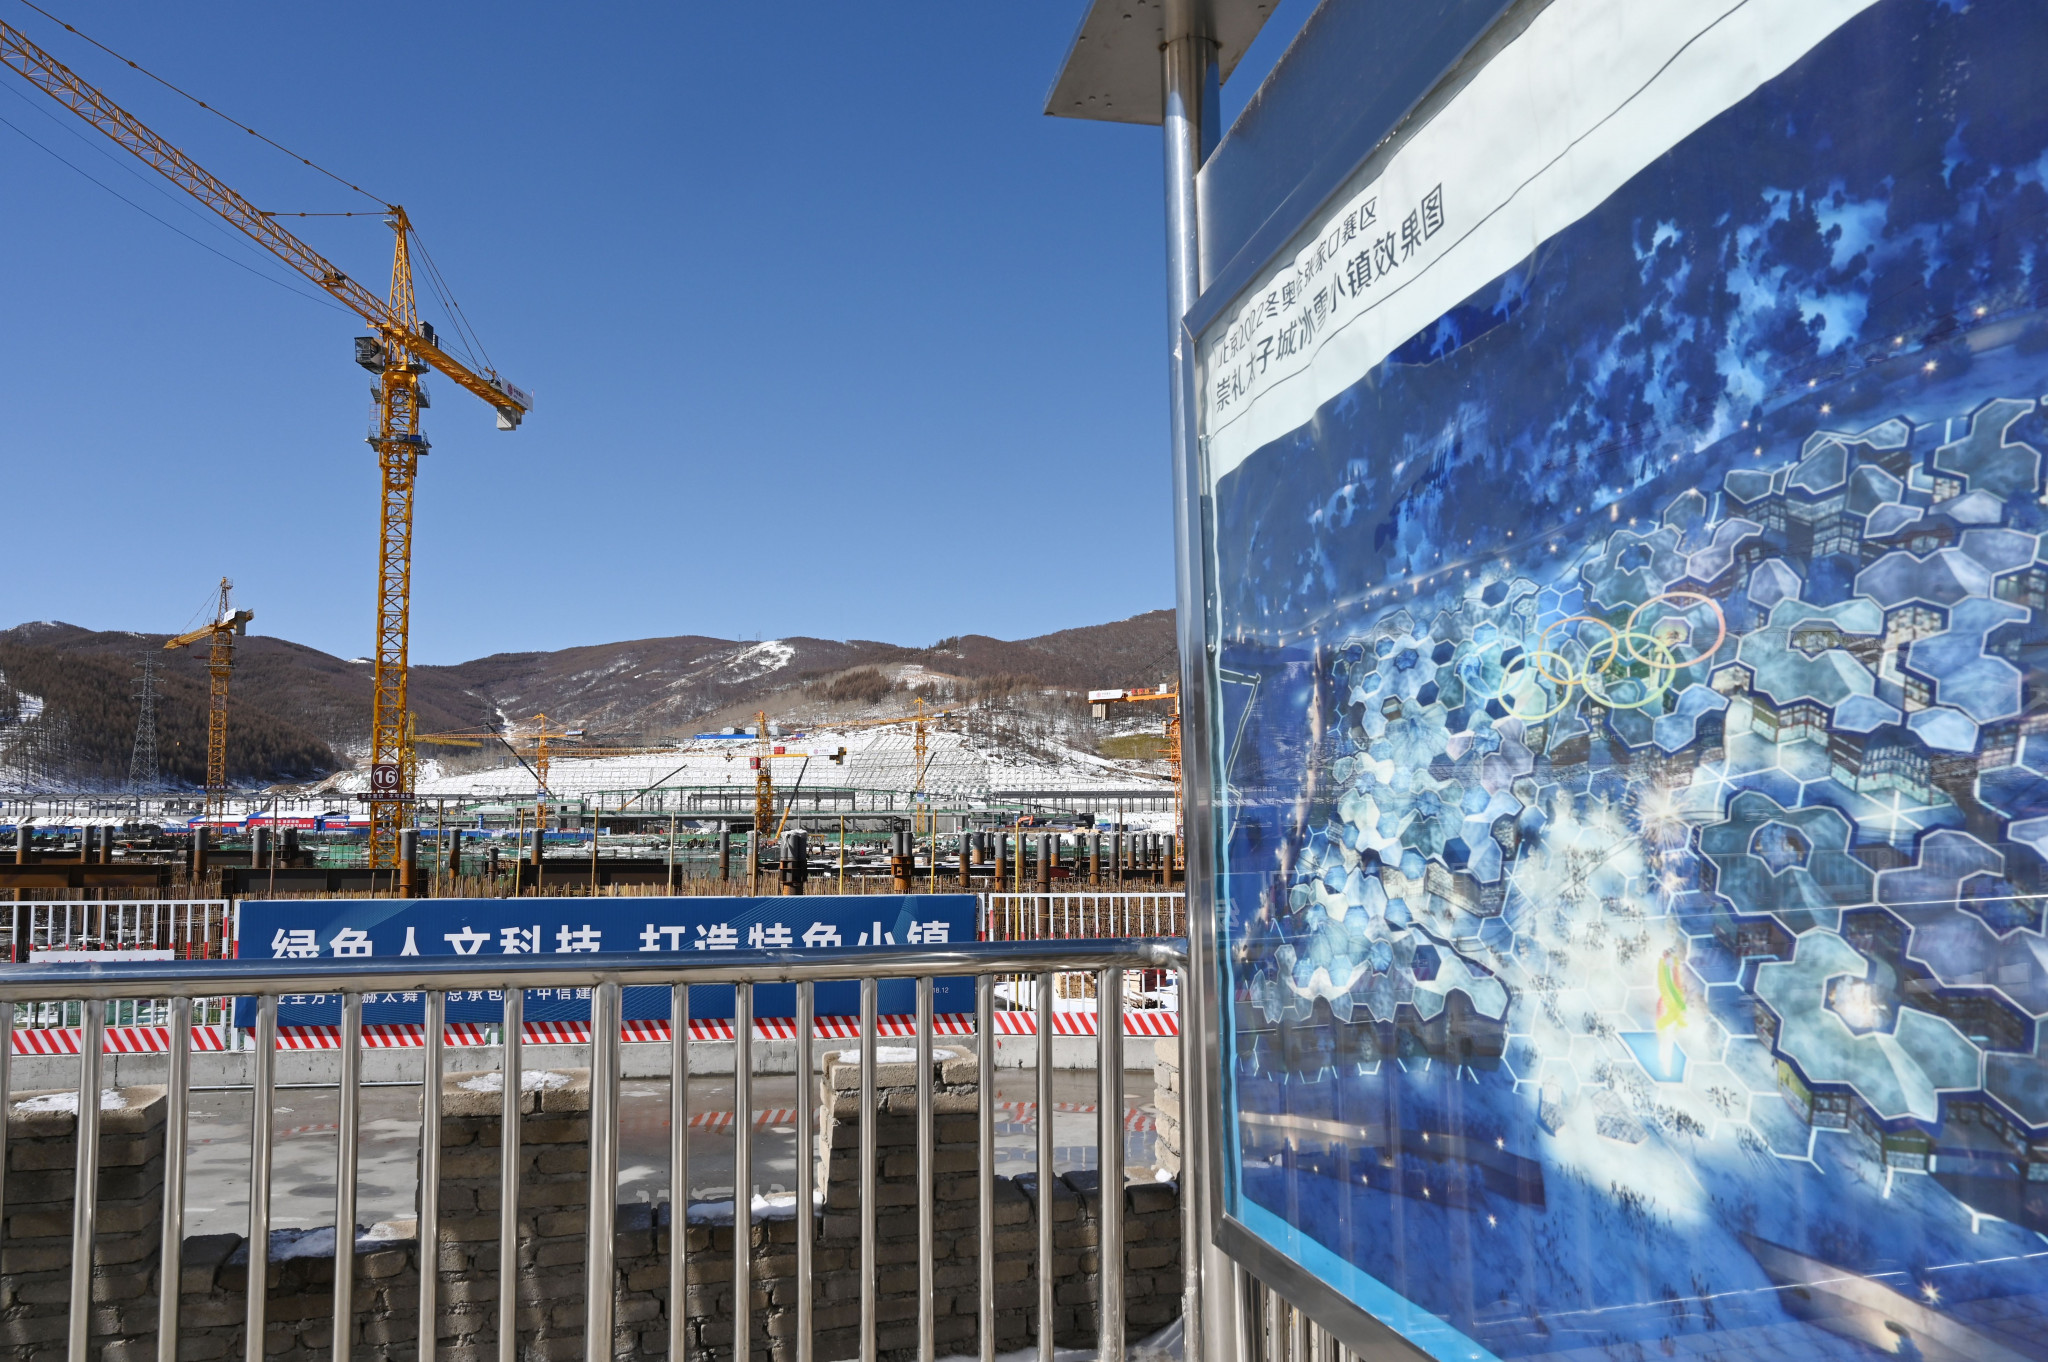 Organisers are hoping to use the event as a testing ground for the 2022 Winter Olympics in Beijing ©Getty Images